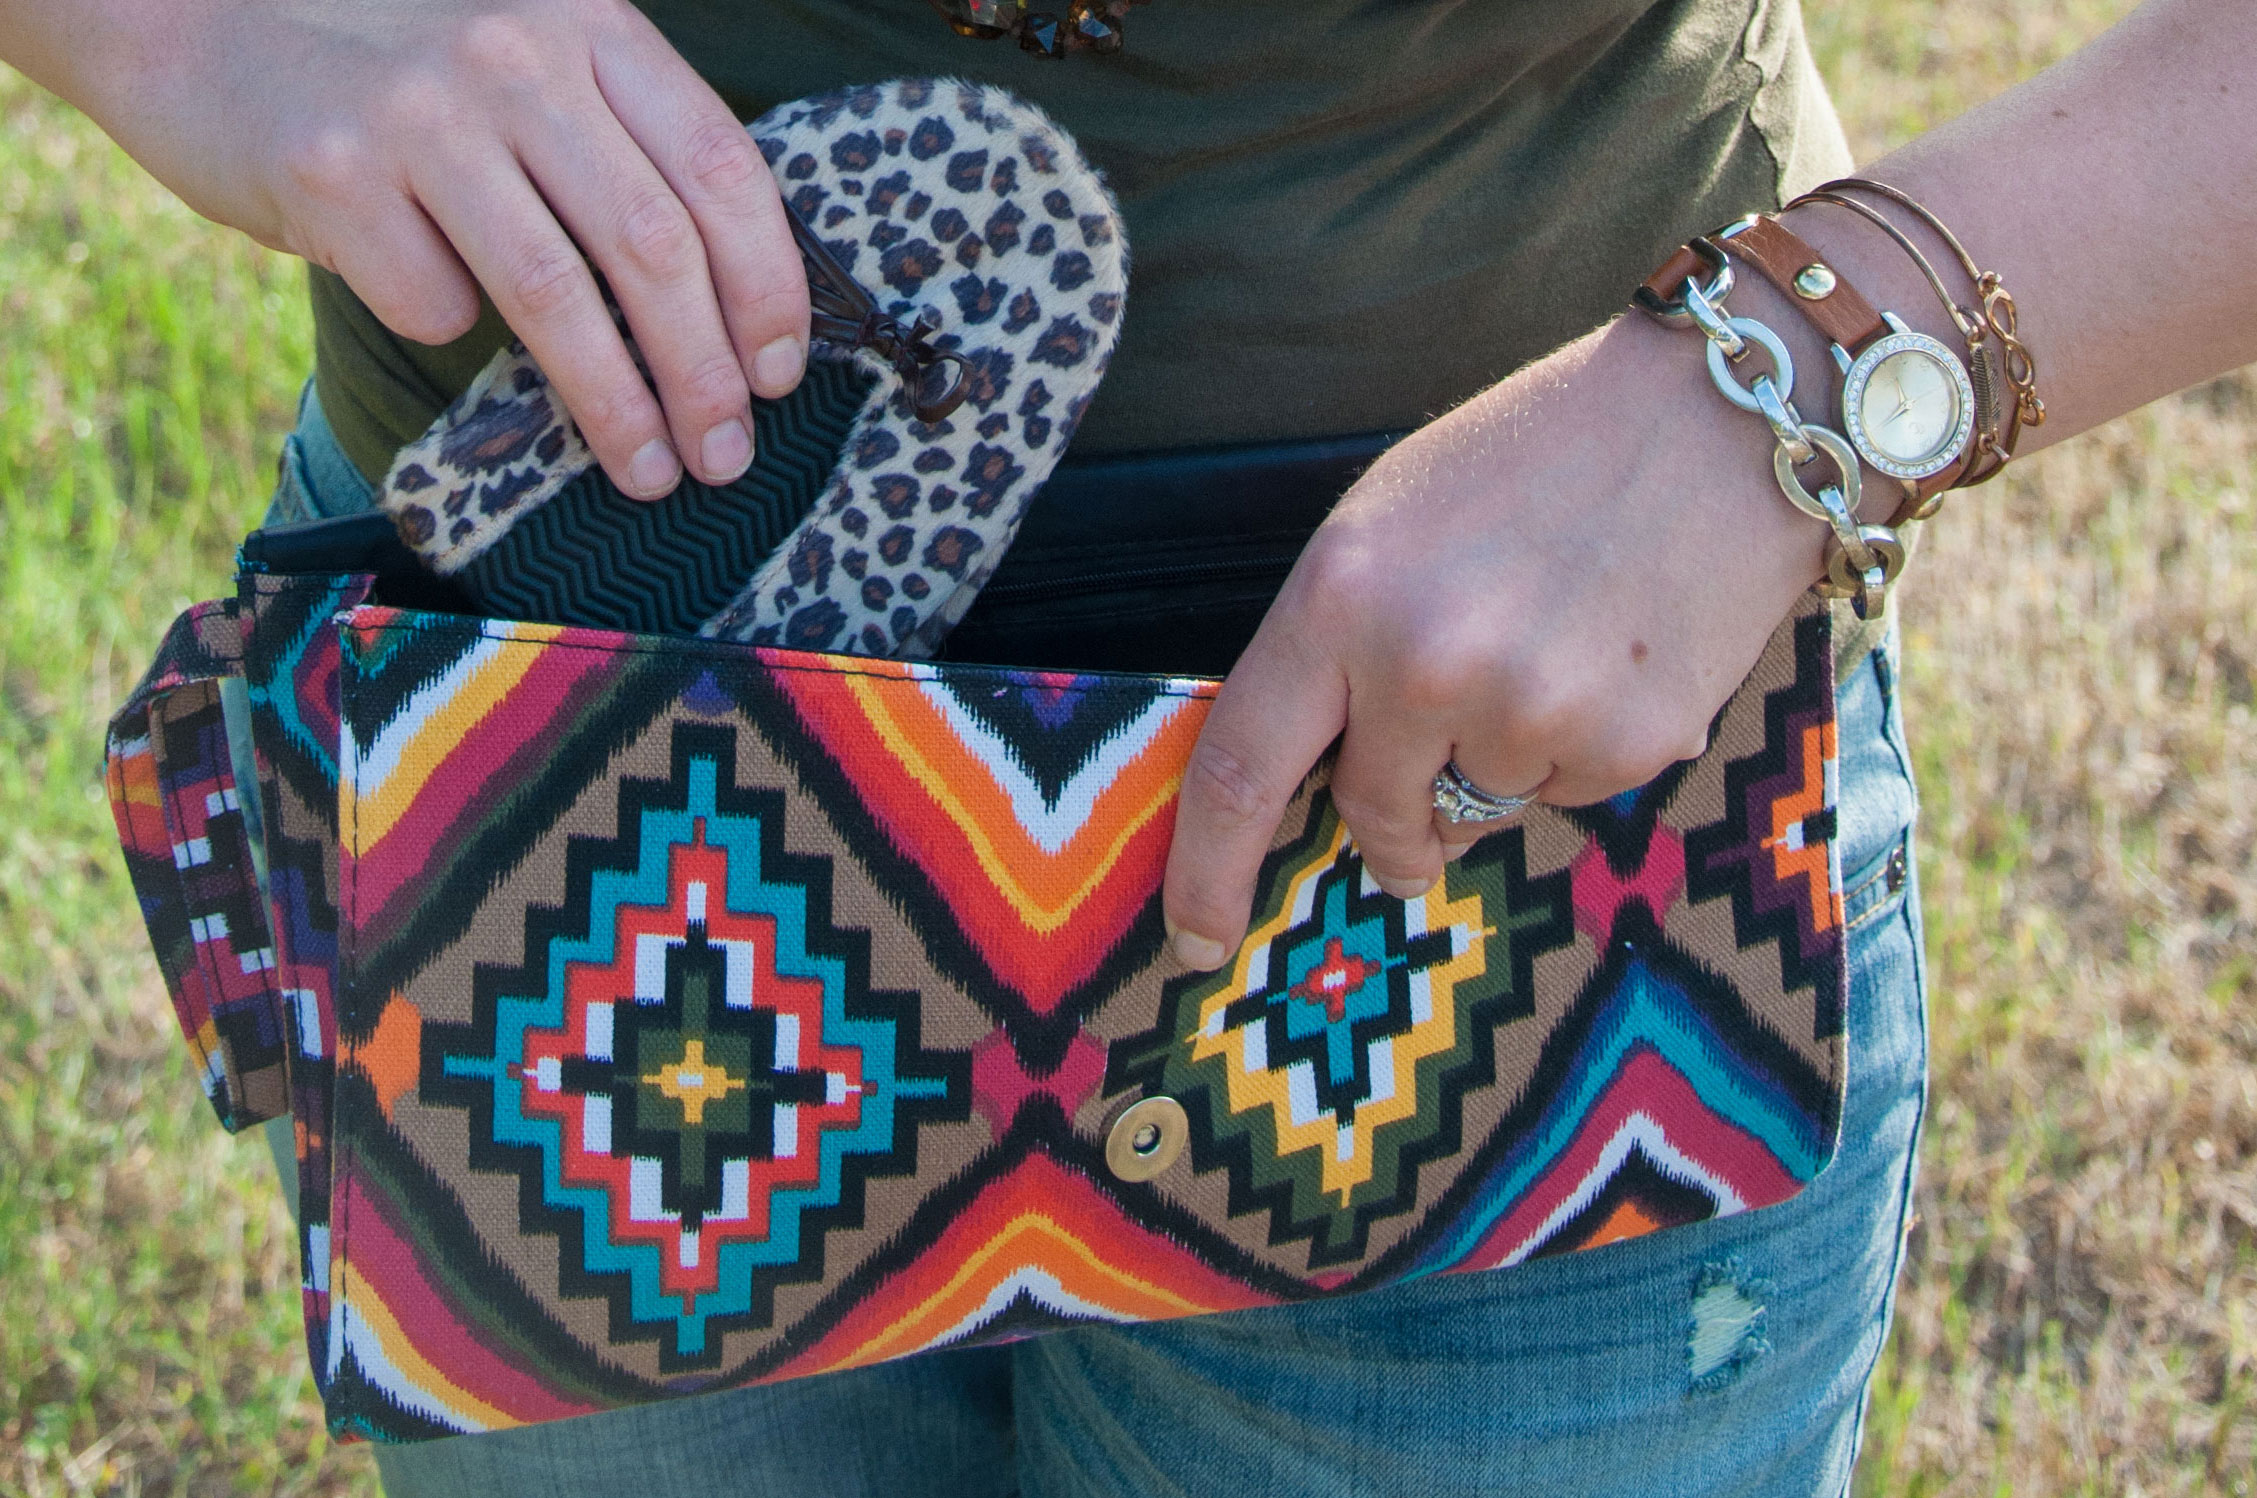 Shoes to fit in your clutch